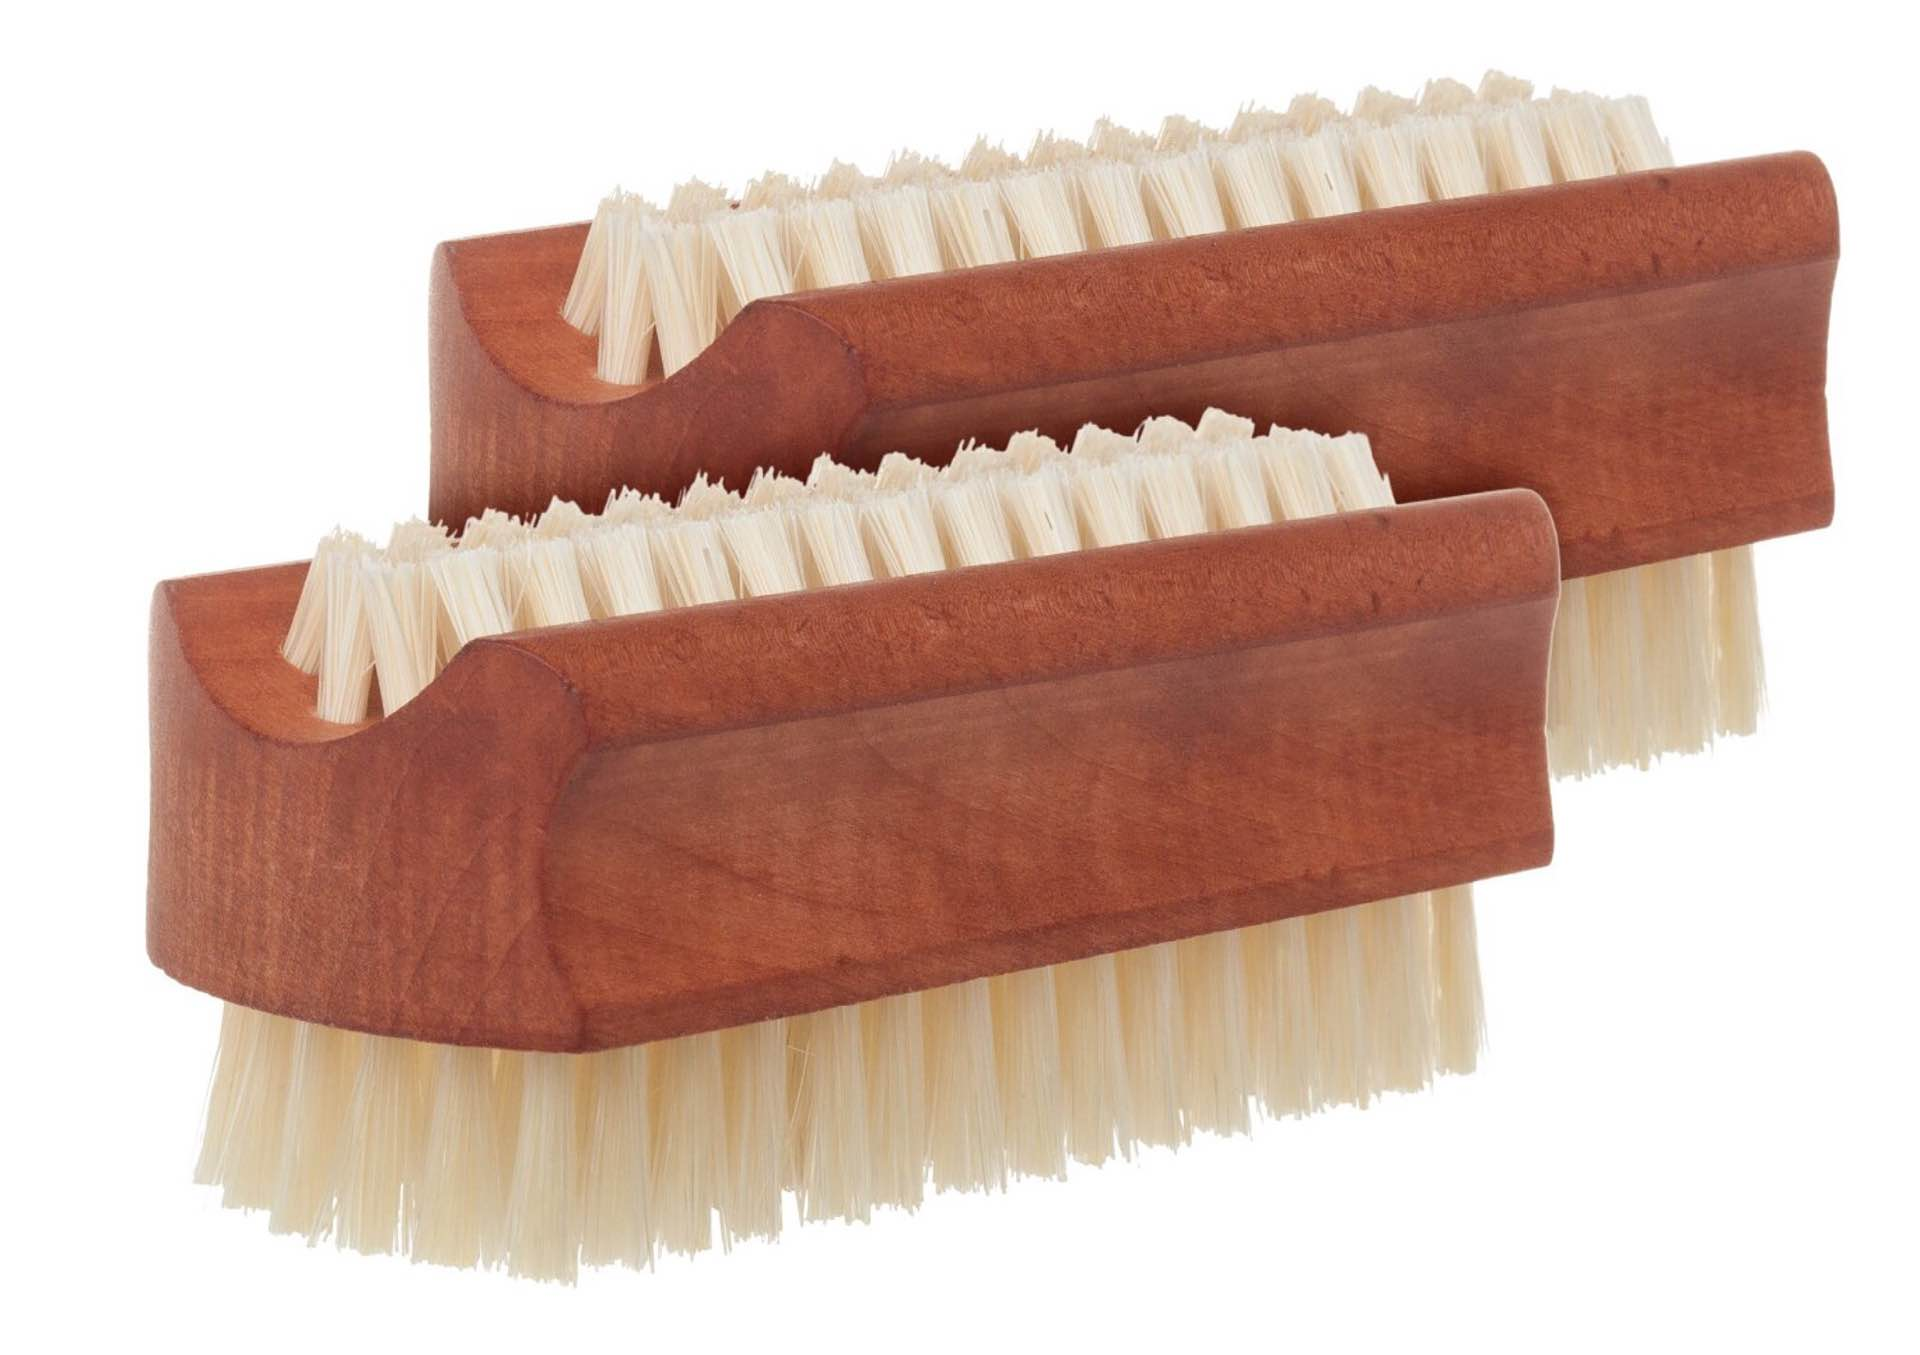 Bürstenhaus Redecker Wooden Nail Brushes — Tools and Toys